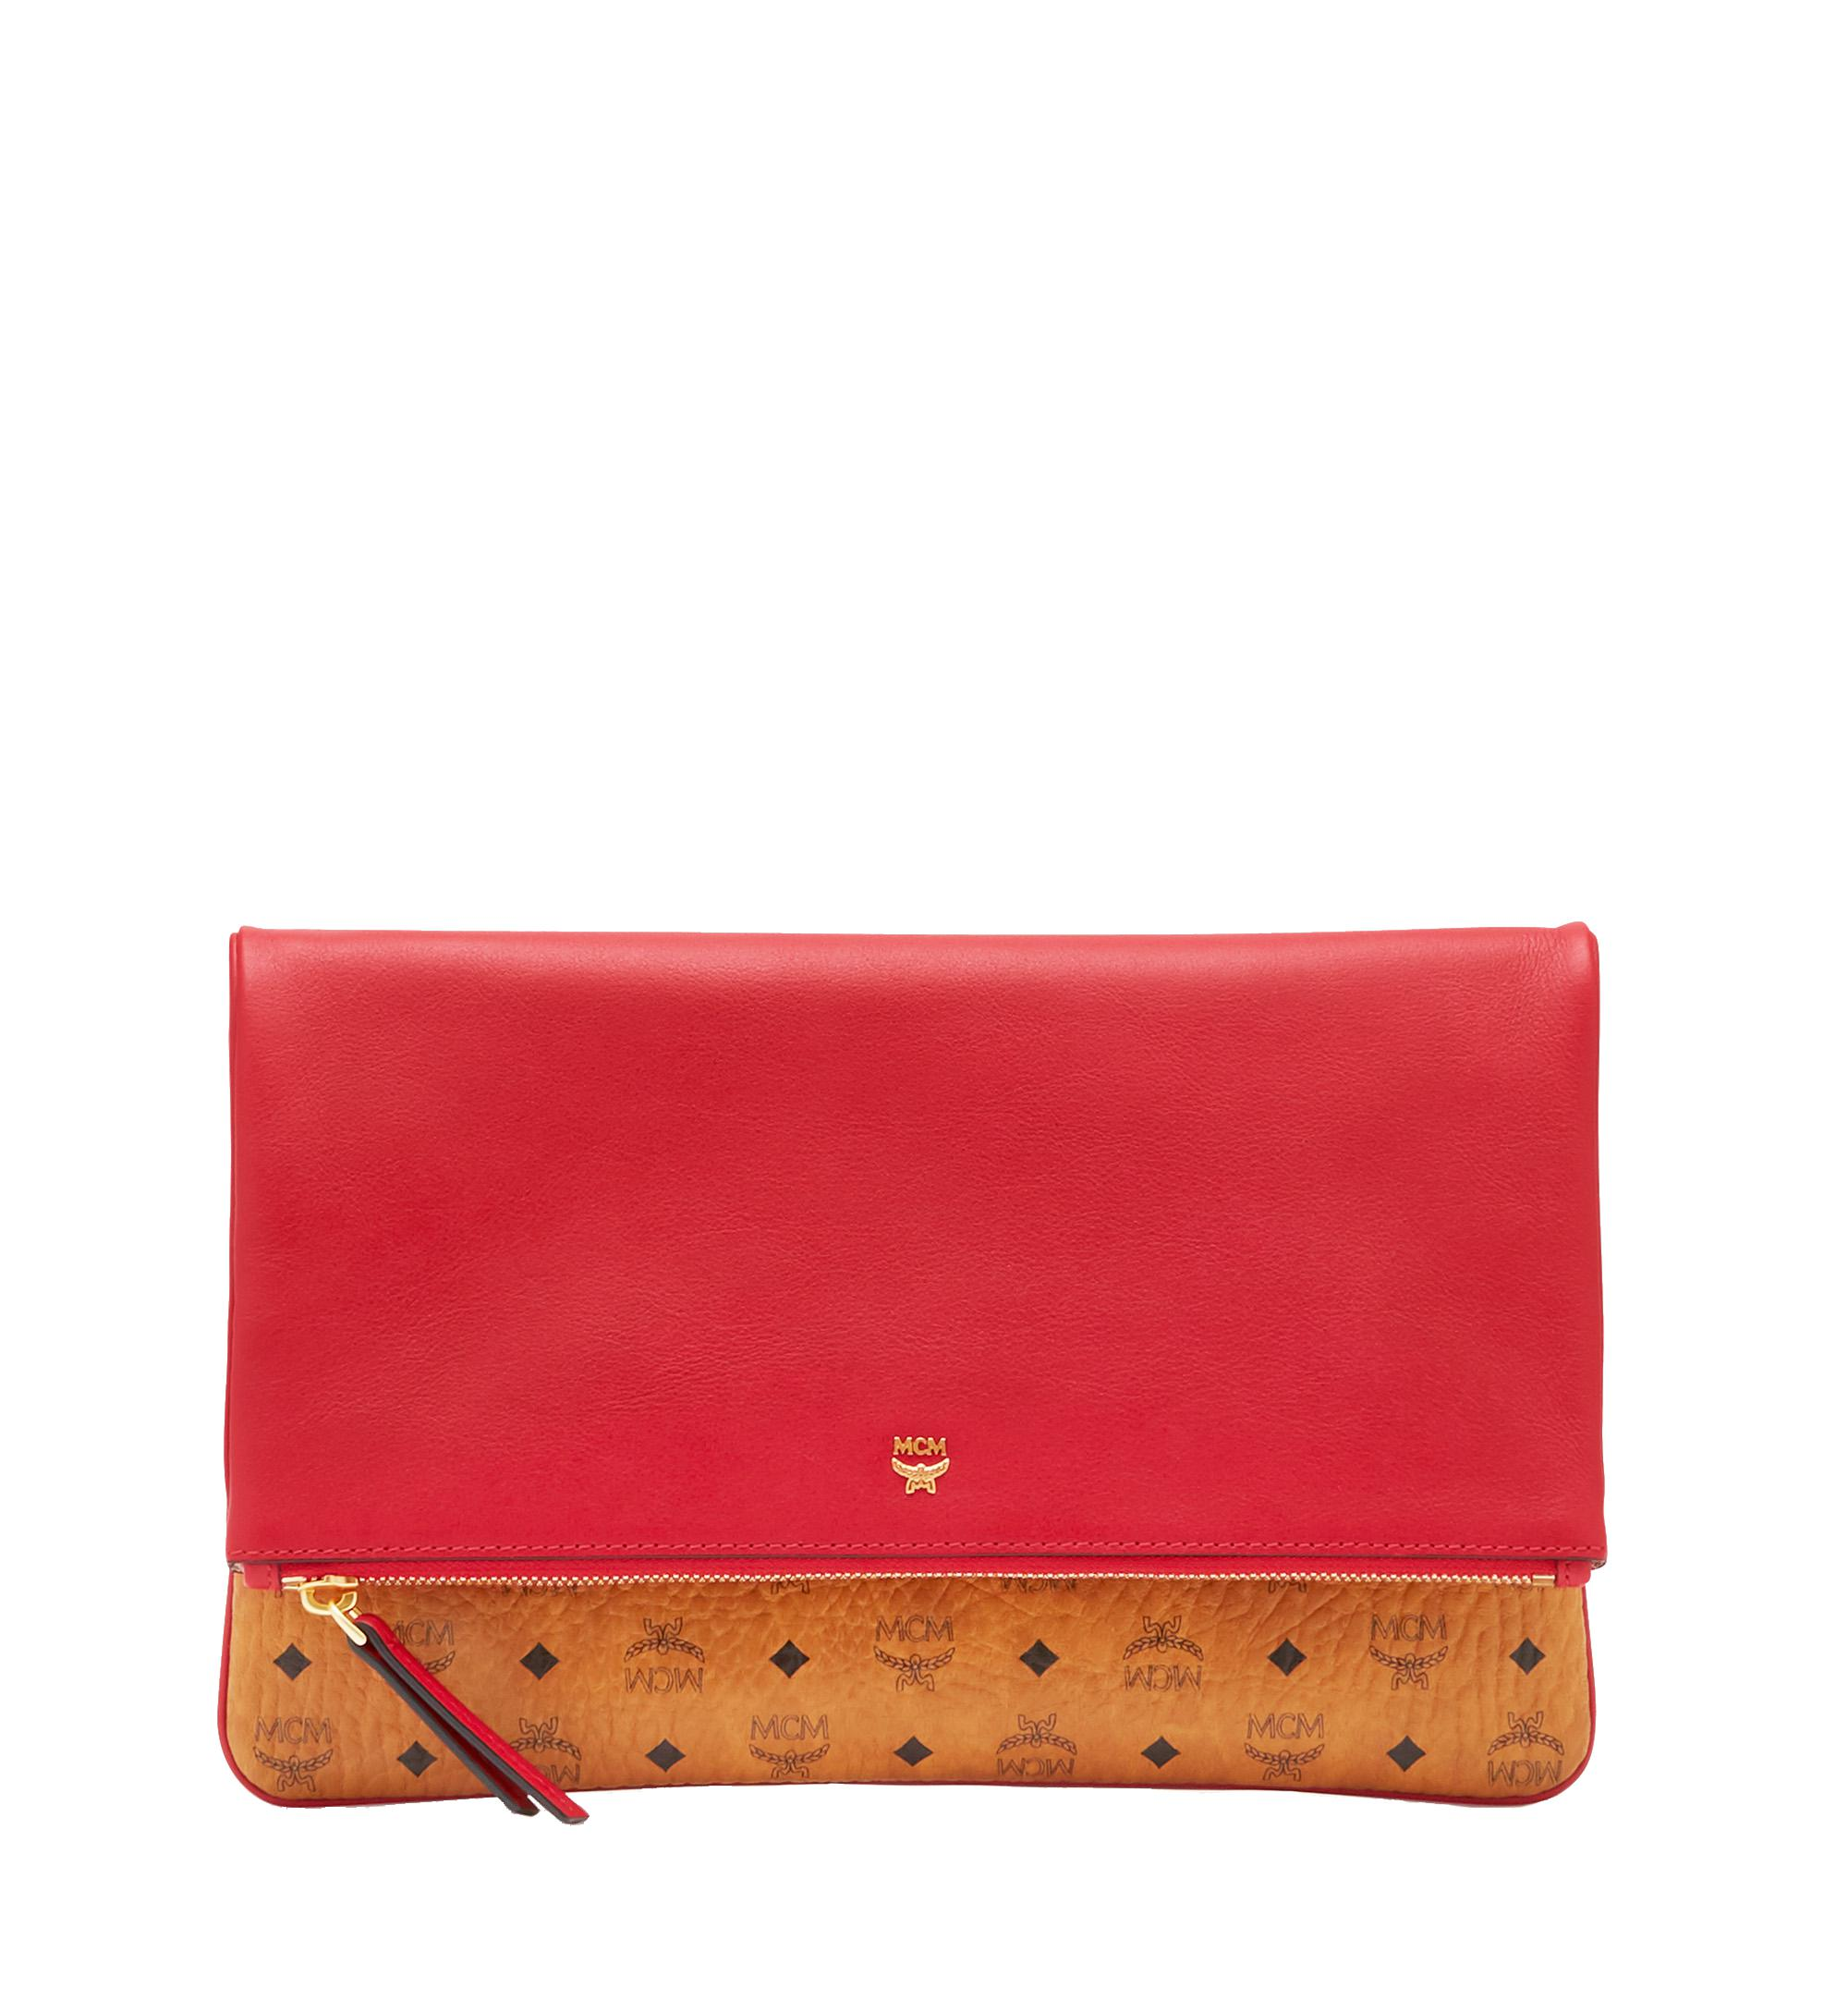 b164eba3d MCM Corina Crossbody Clutch In Visetos Block Leather in Red - Lyst